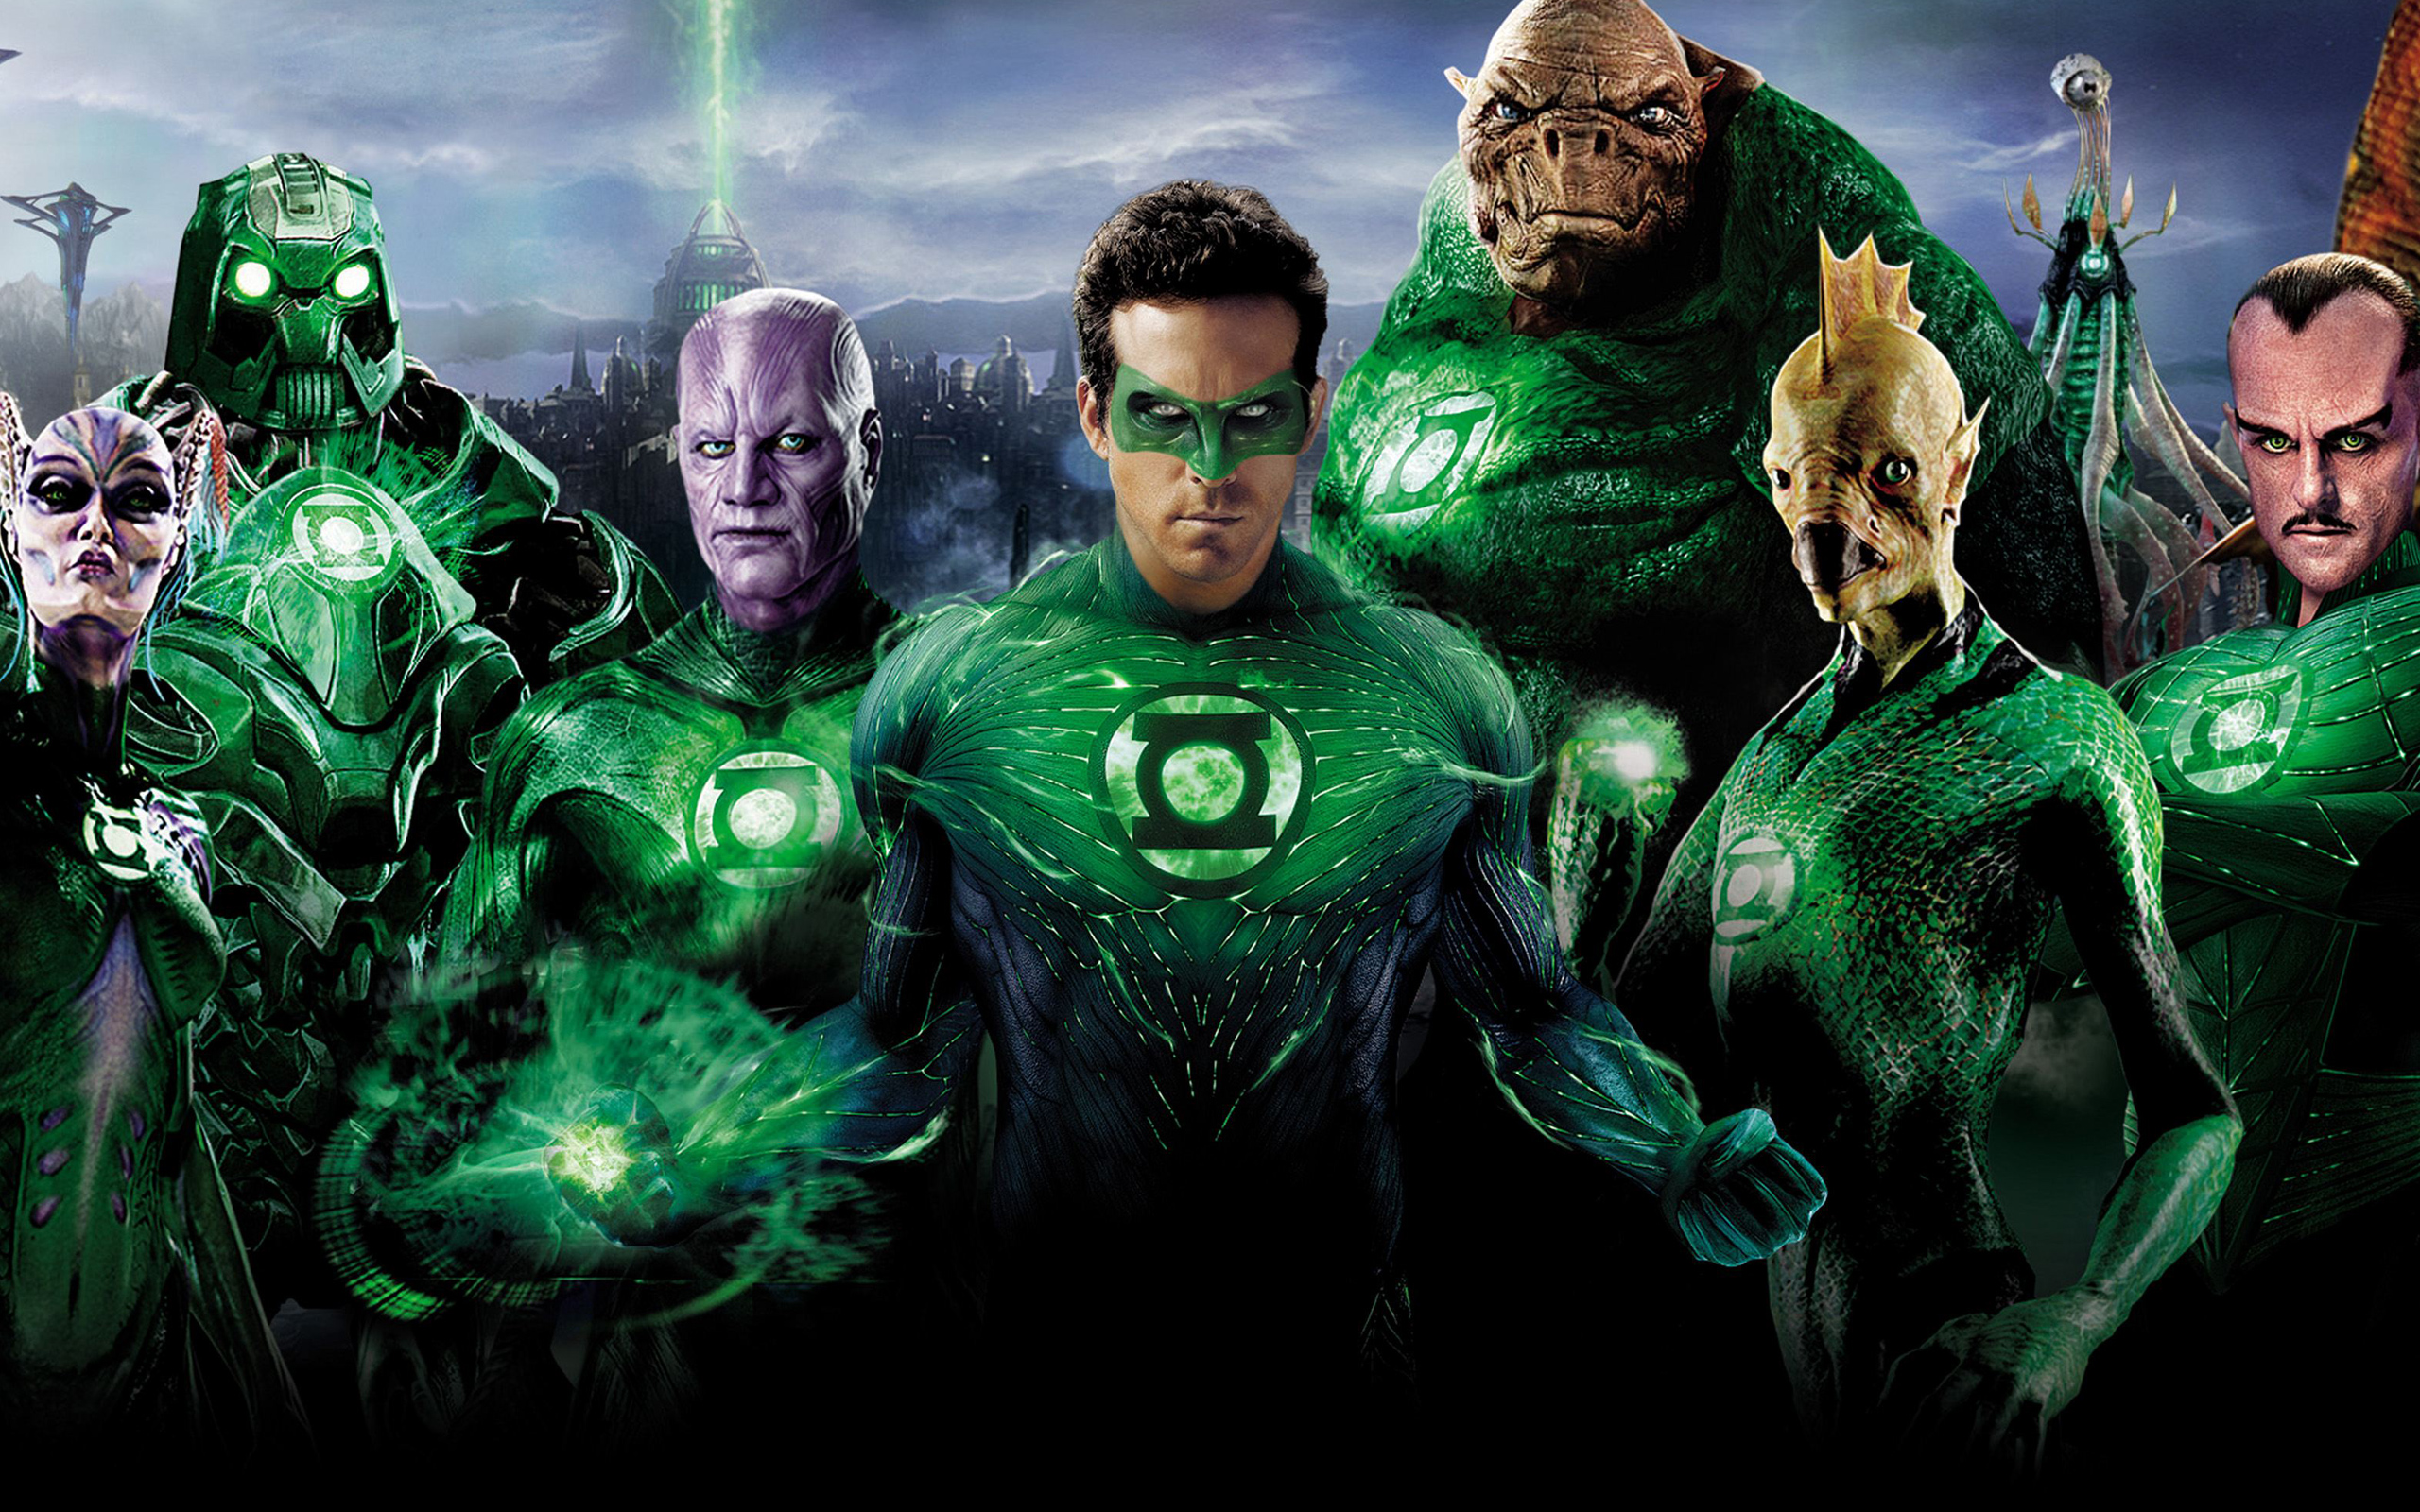 Green Lantern Superheroes 866.05 Kb